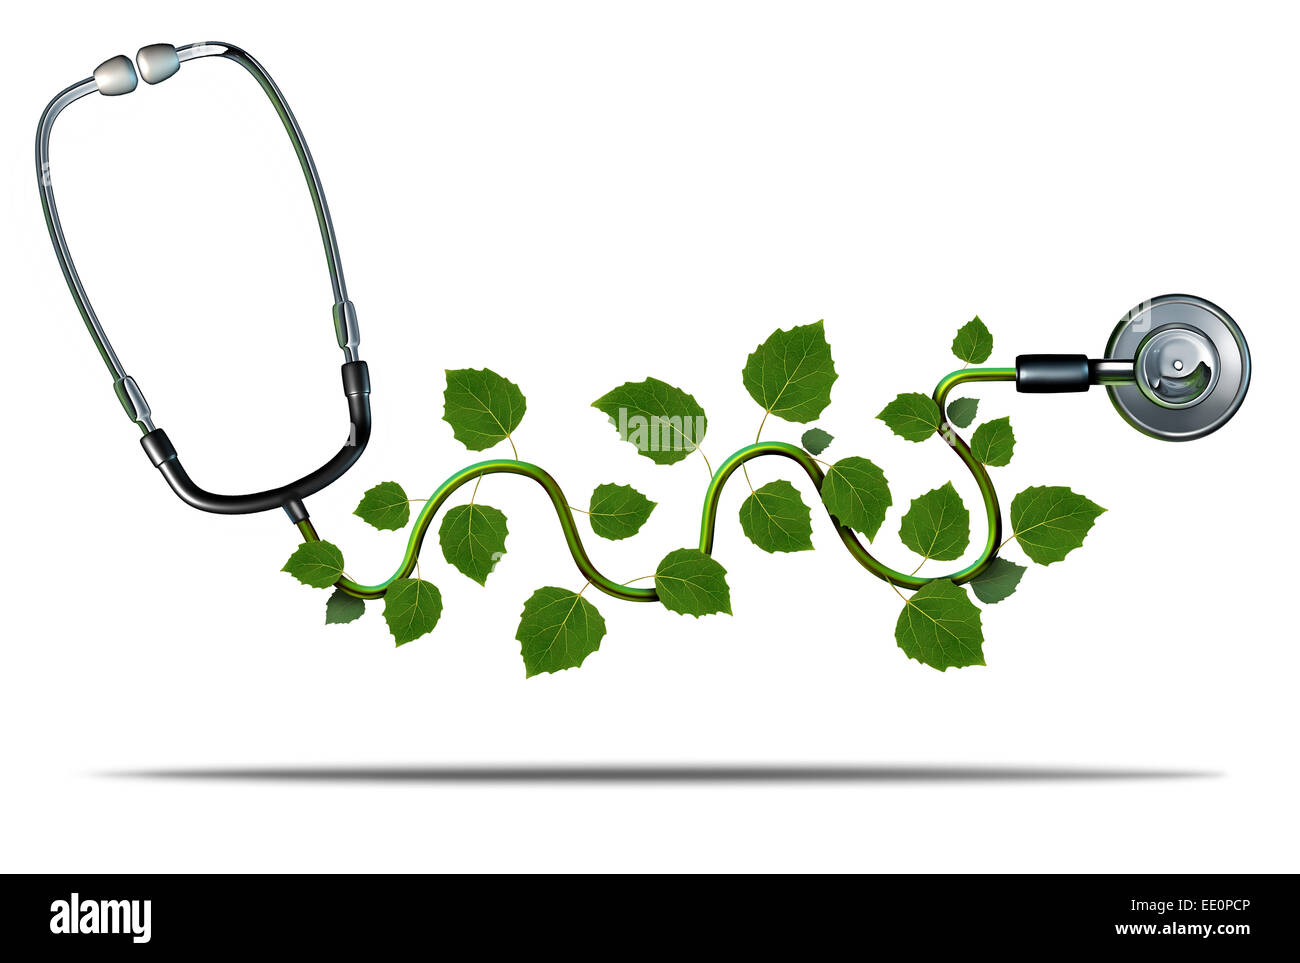 Natural medicine and alternative therapy concept as a doctor stethoscope with plant leaves growing on the medical - Stock Image